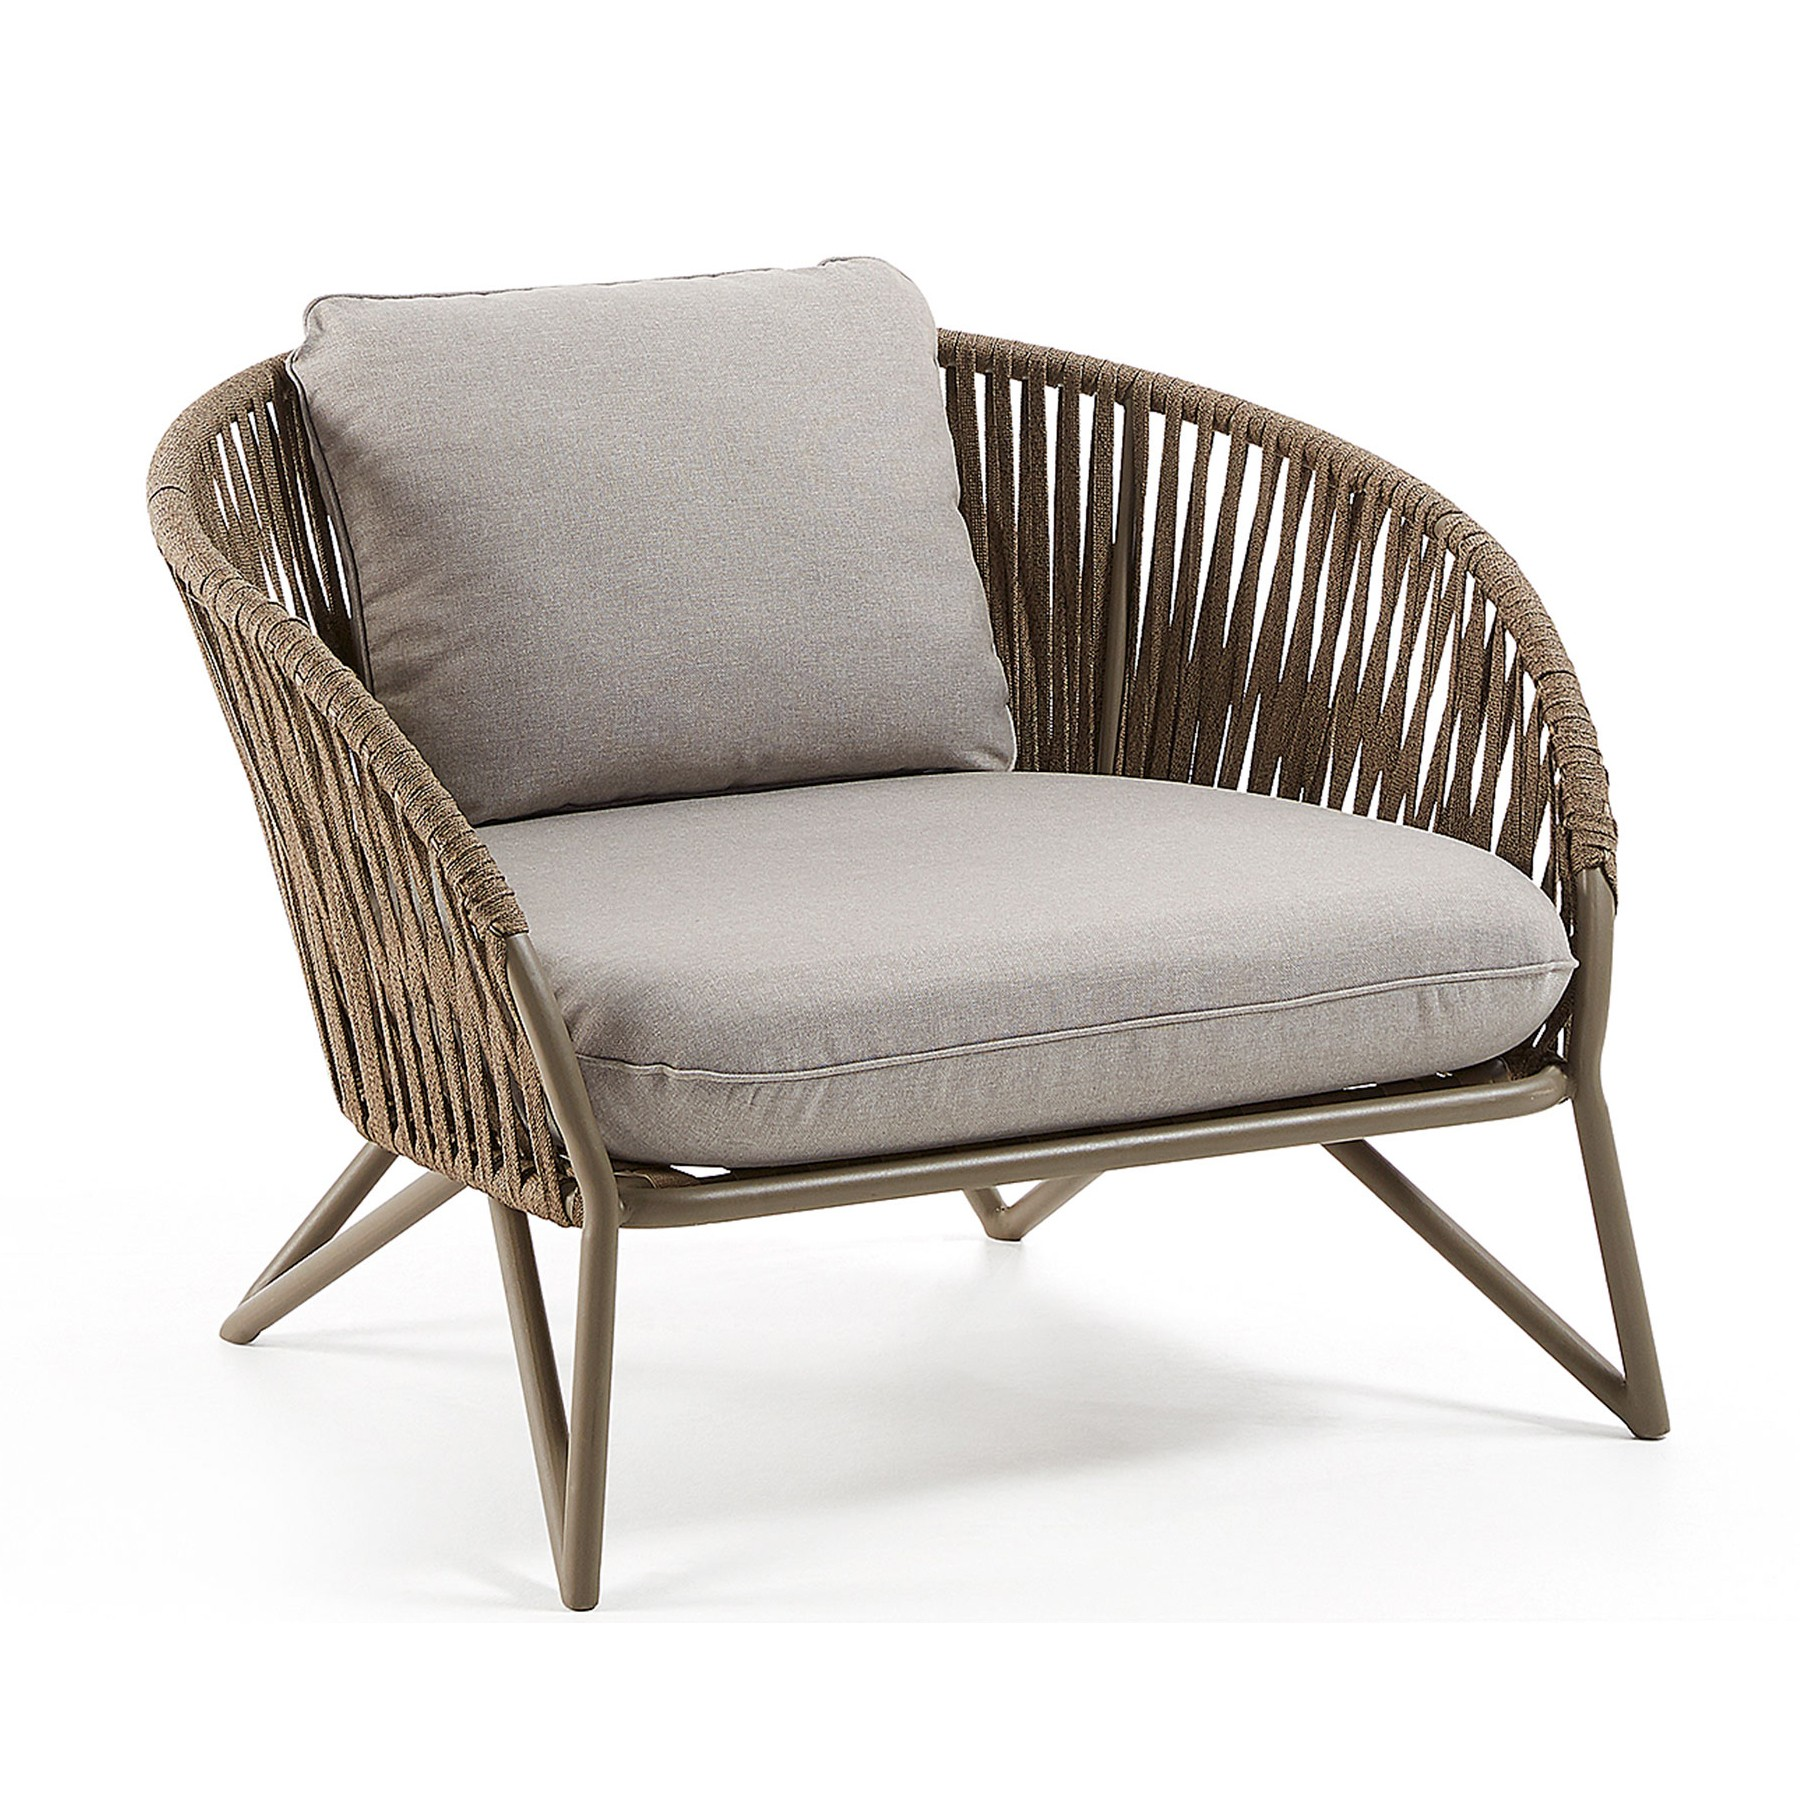 Poya Woven Rope Armchair